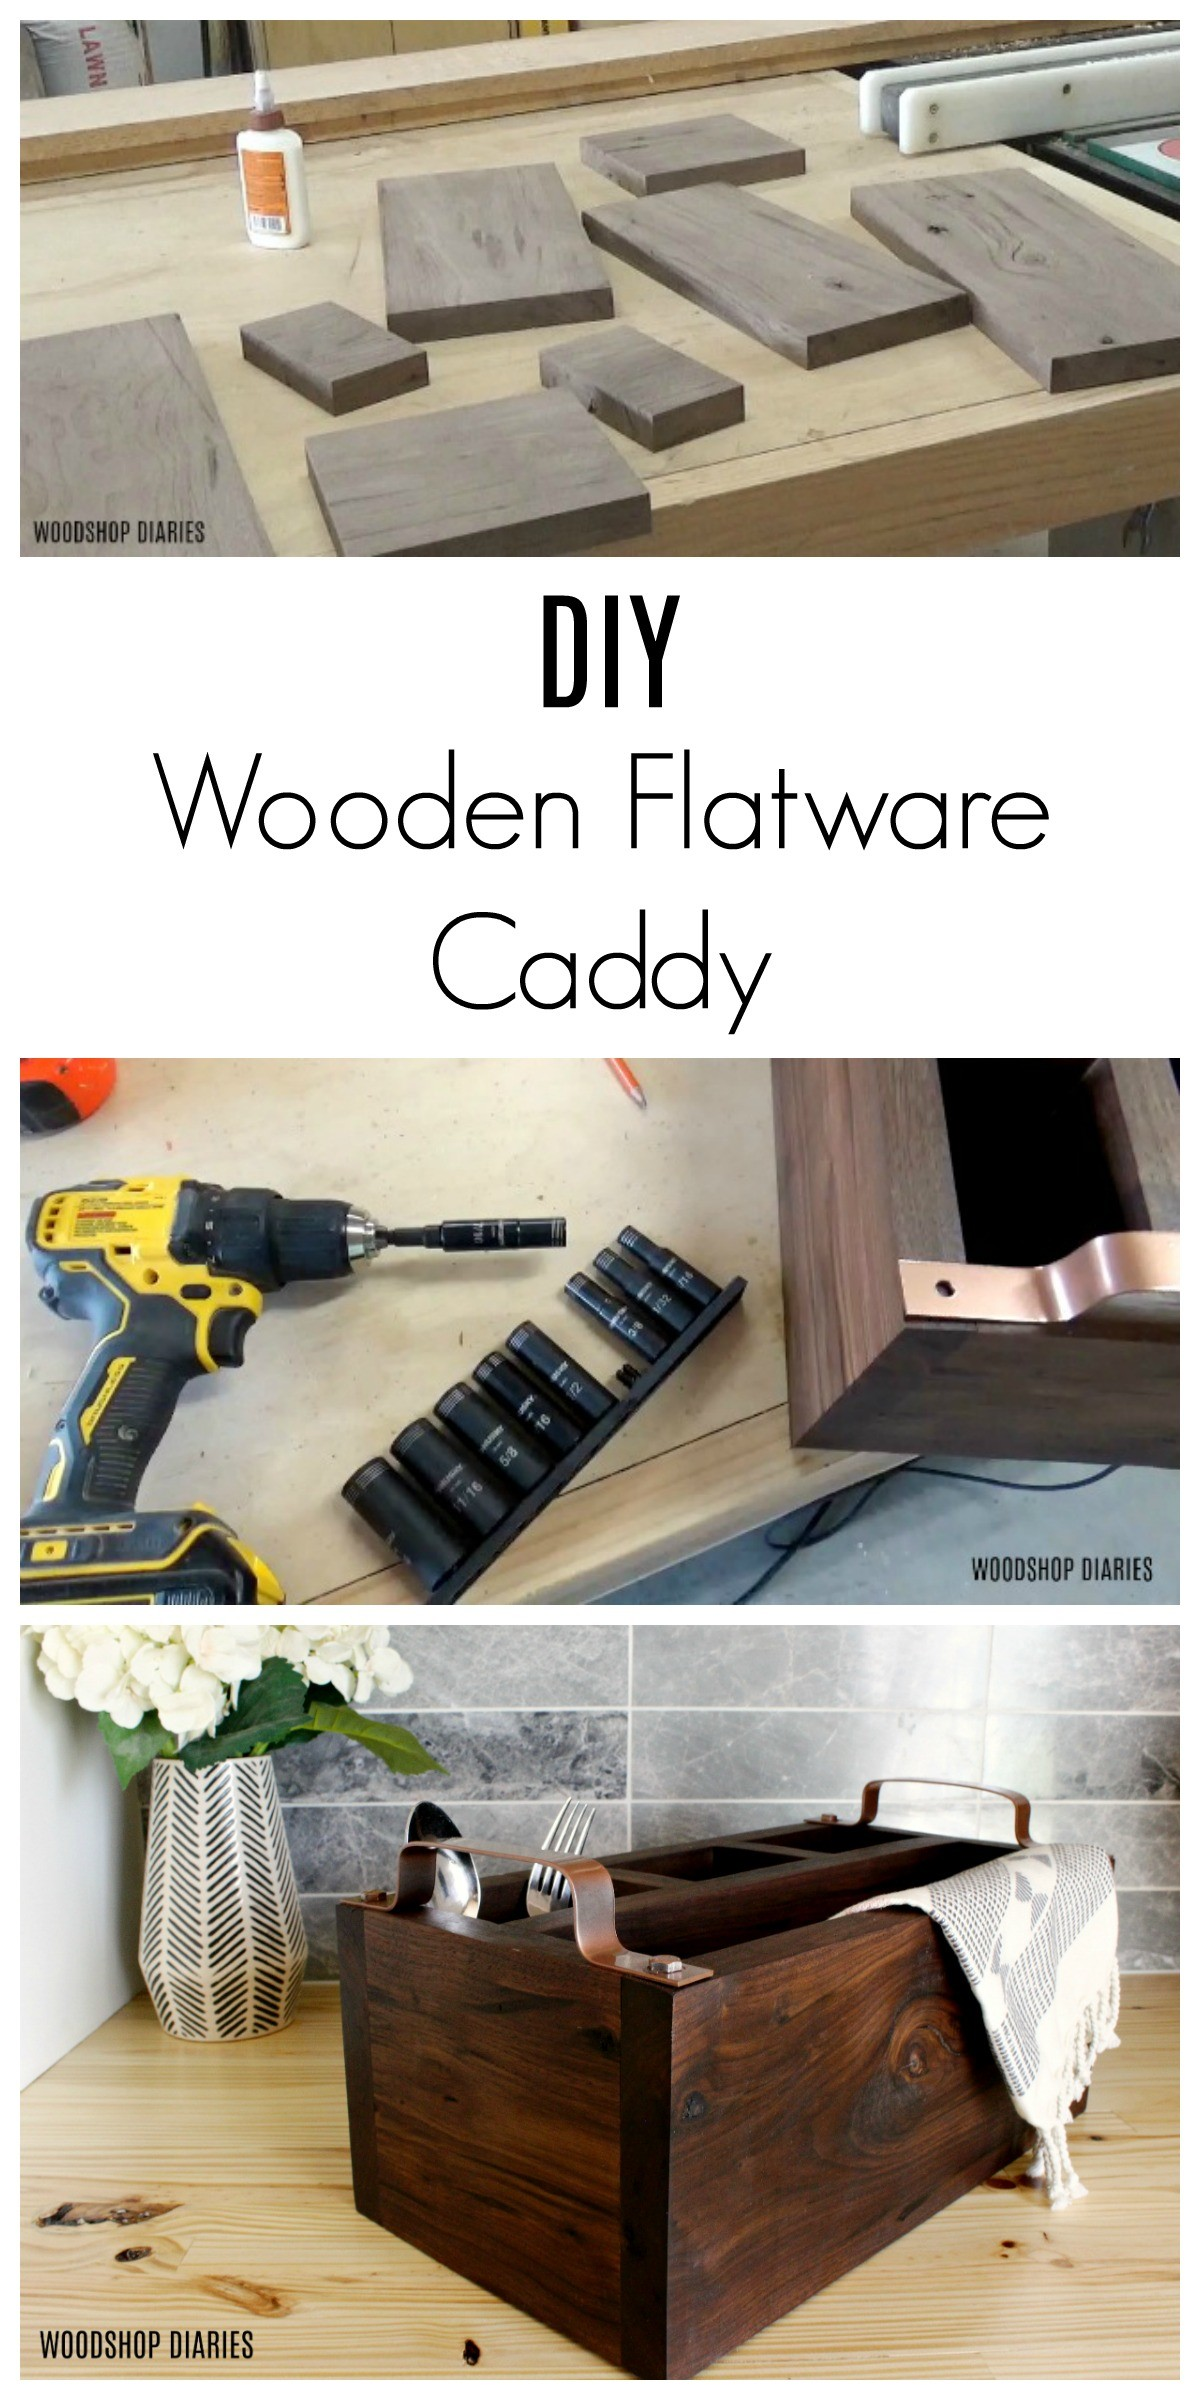 How to make a simple DIY wooden flatware caddy from one board and a little steel flat stock